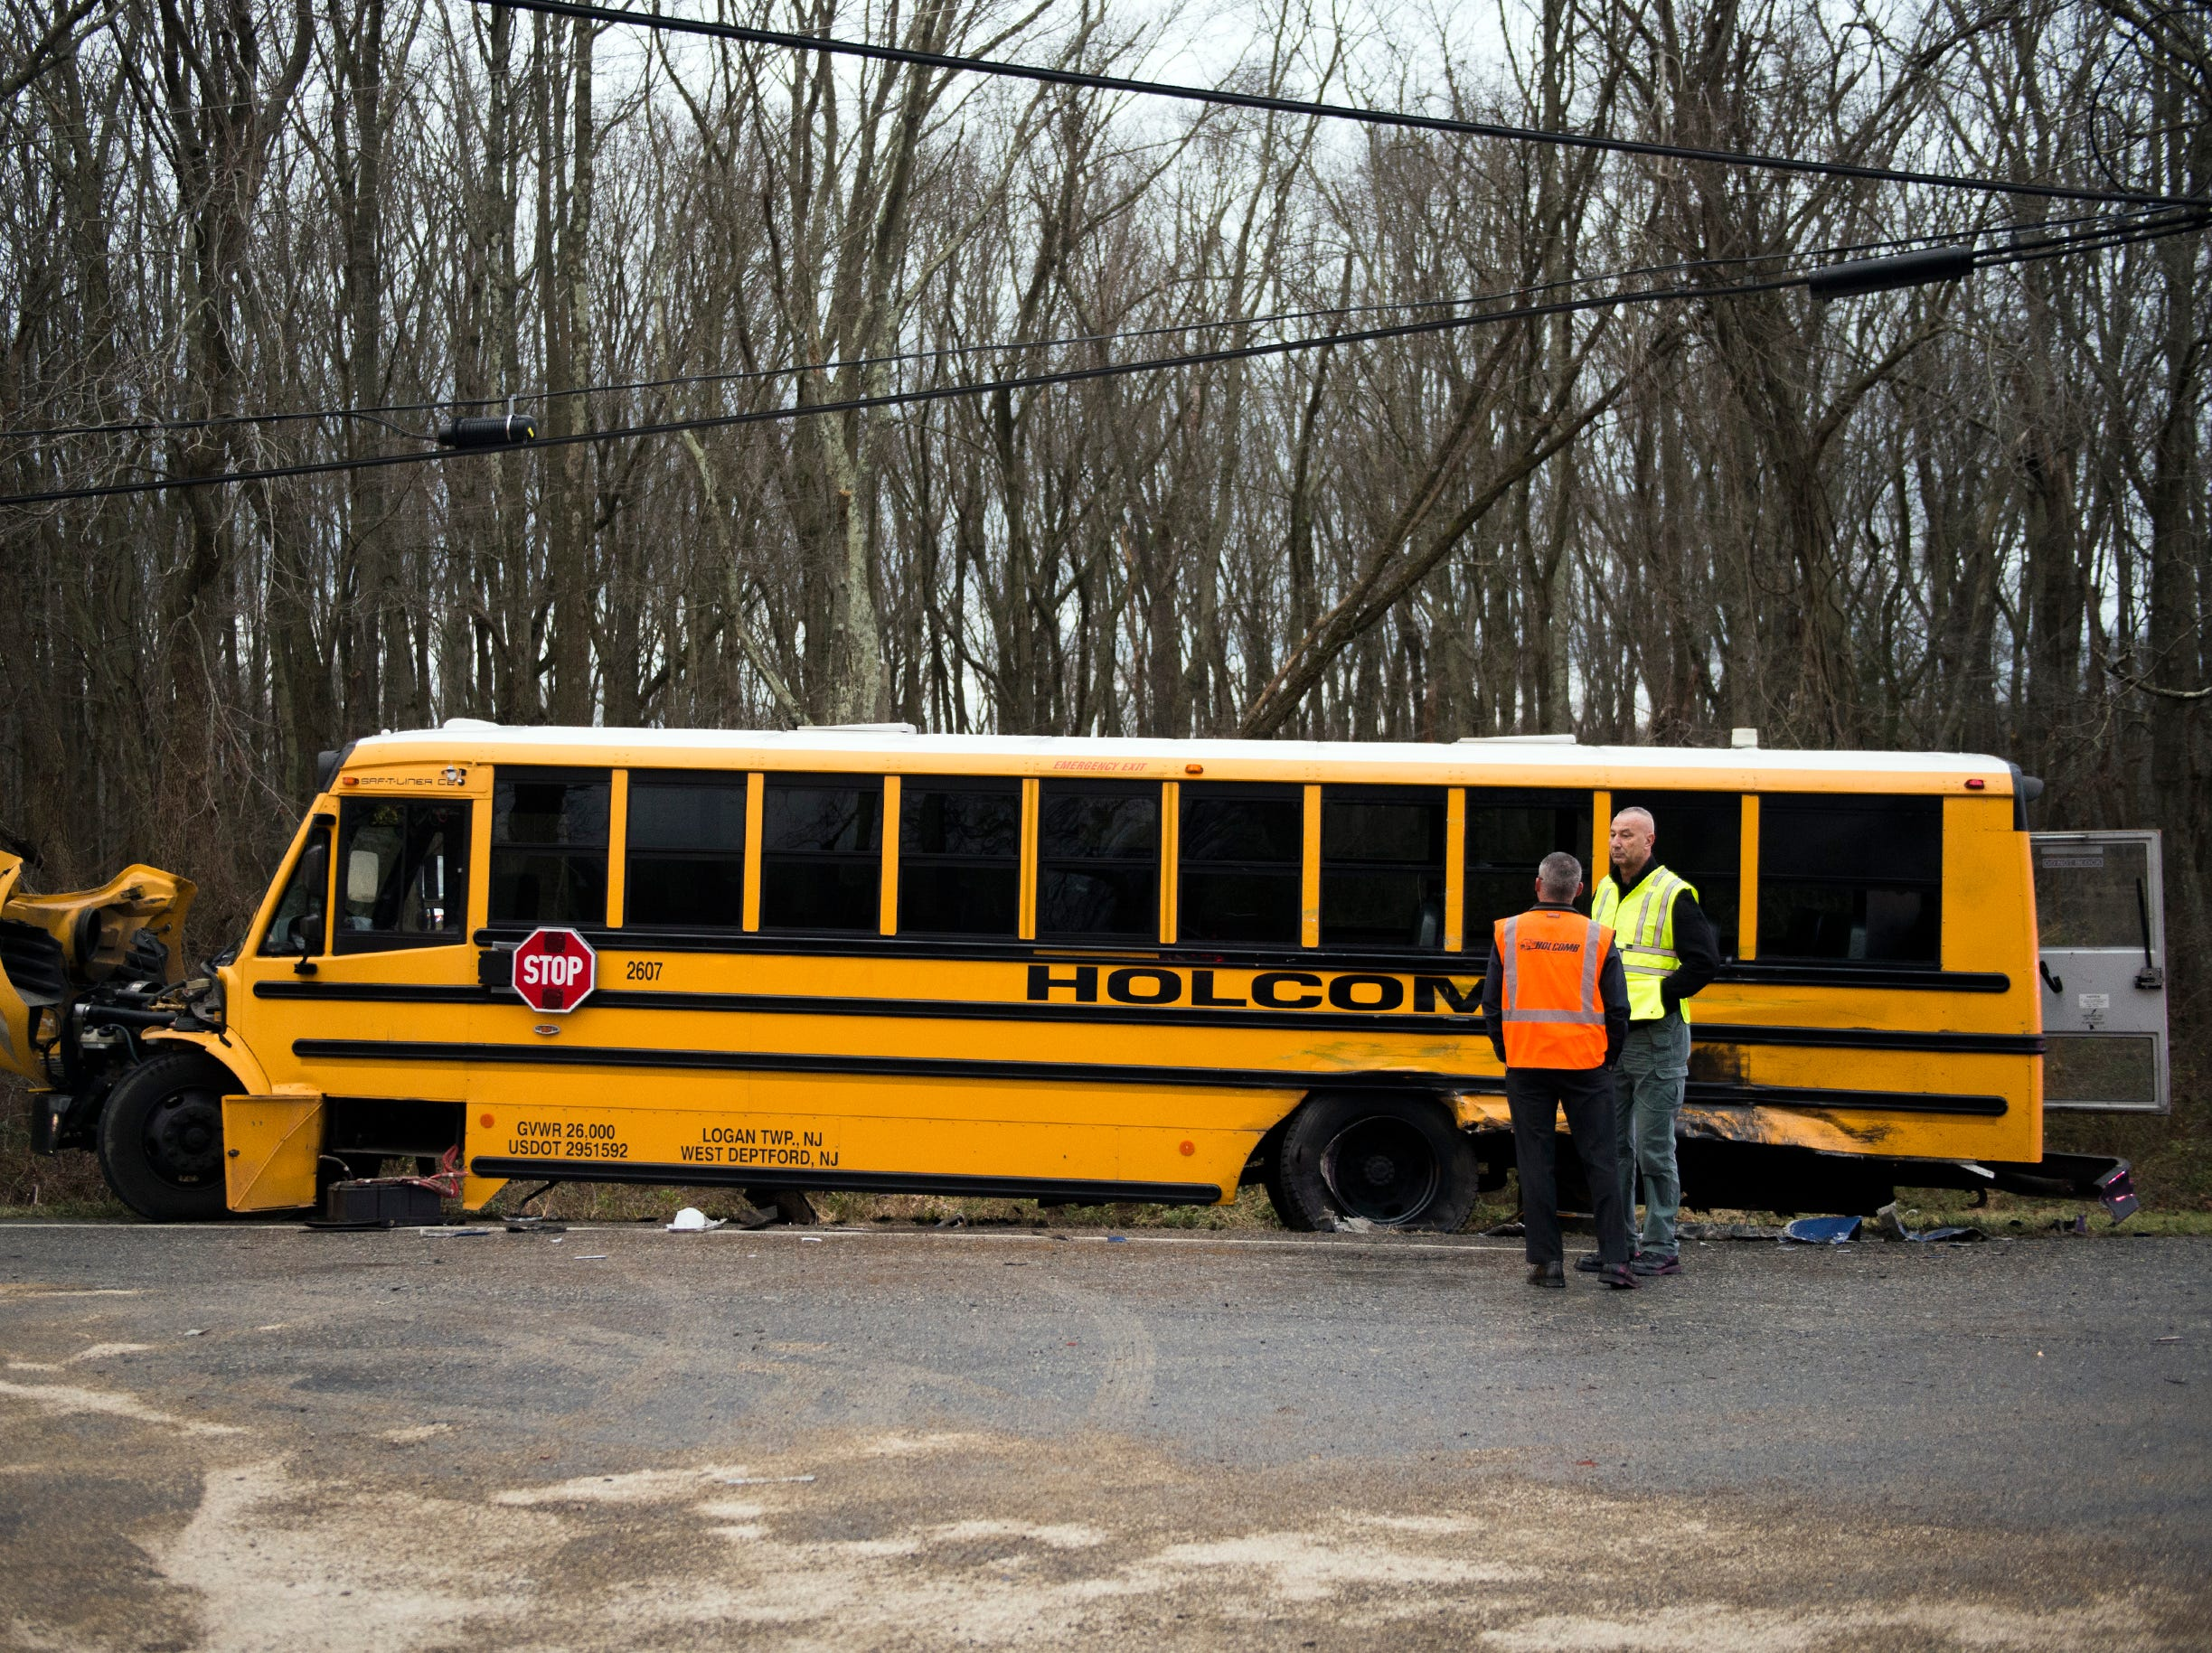 Officials work the scene after a school bus carrying 22 students collided with a tractor trailer Monday, Jan. 7, 2019 in South Harrison, N.J.